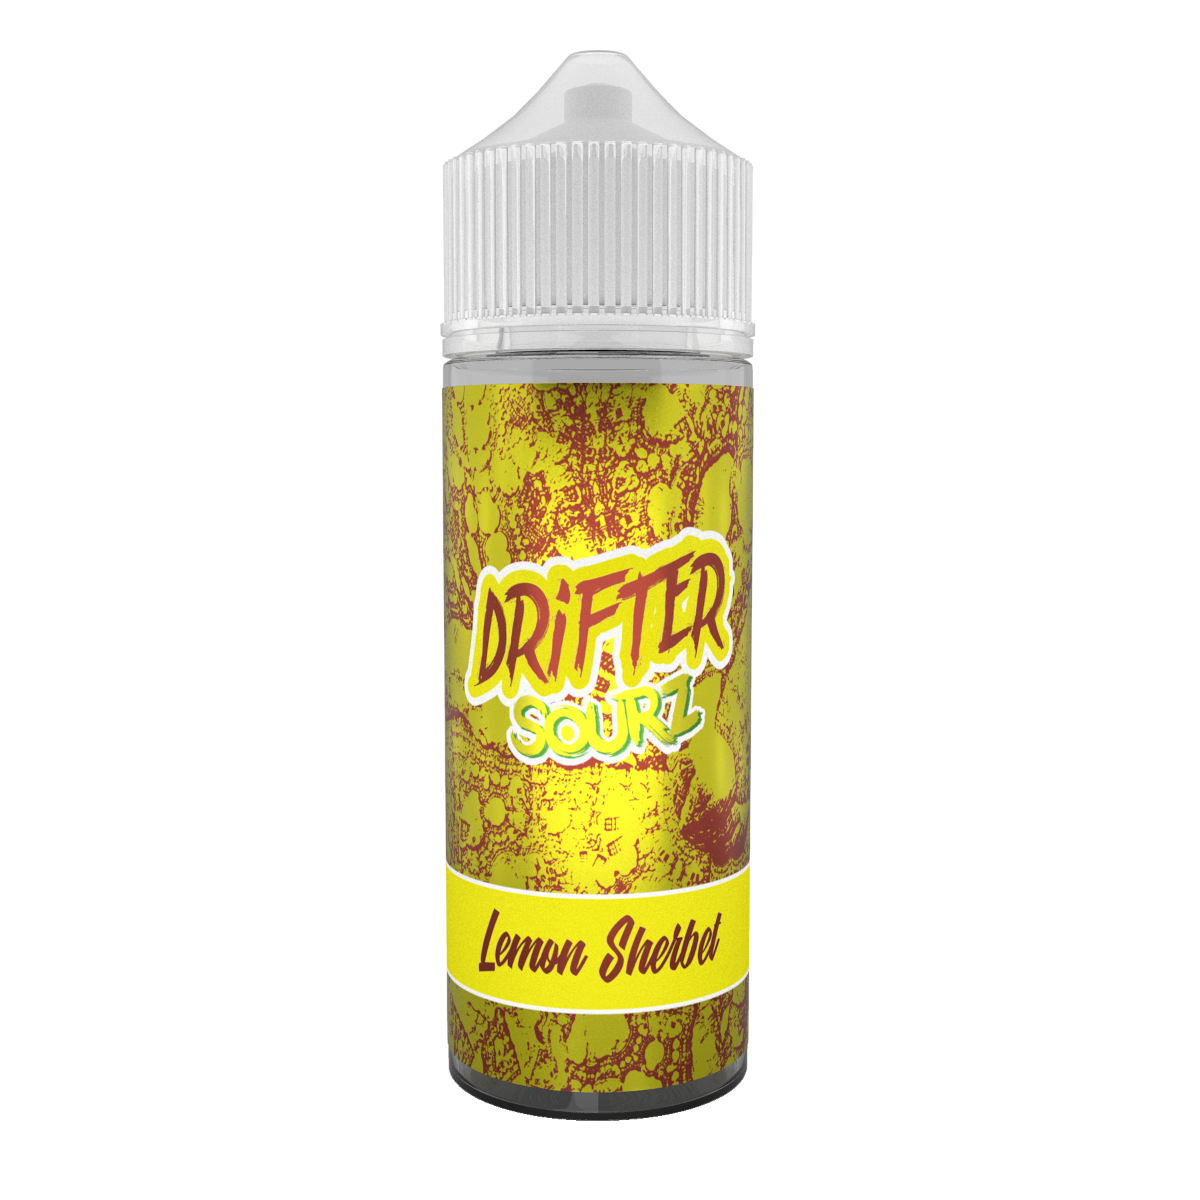 Drifter Lemon Sherbet Sourz FREE Nic Shot E Liquid 100ml